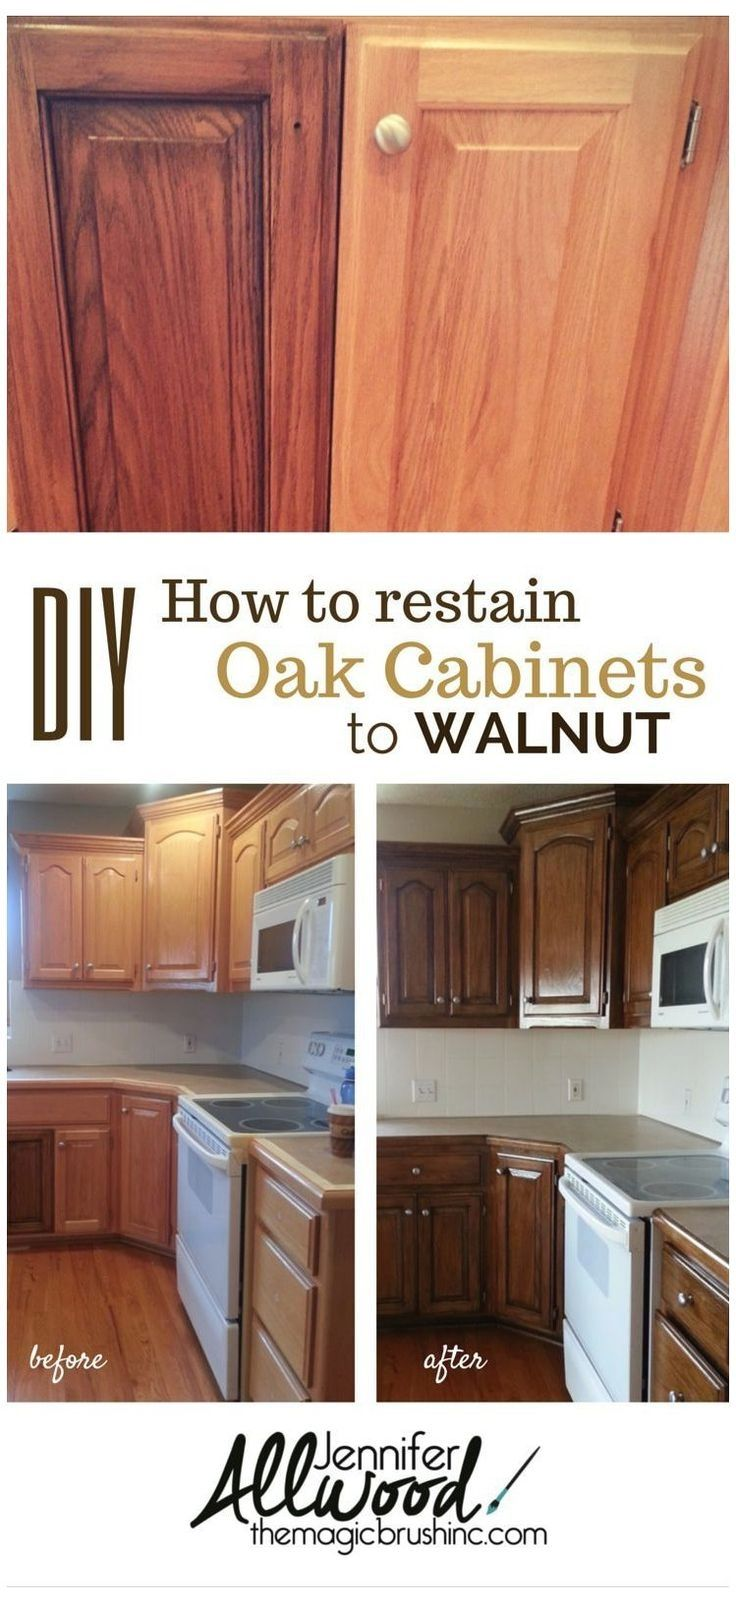 99 Awesome Kitchen Cabinets Ideas In 2020 Stained Kitchen Cabinets Restaining Kitchen Cabinets Kitchen Cabinets Before And After